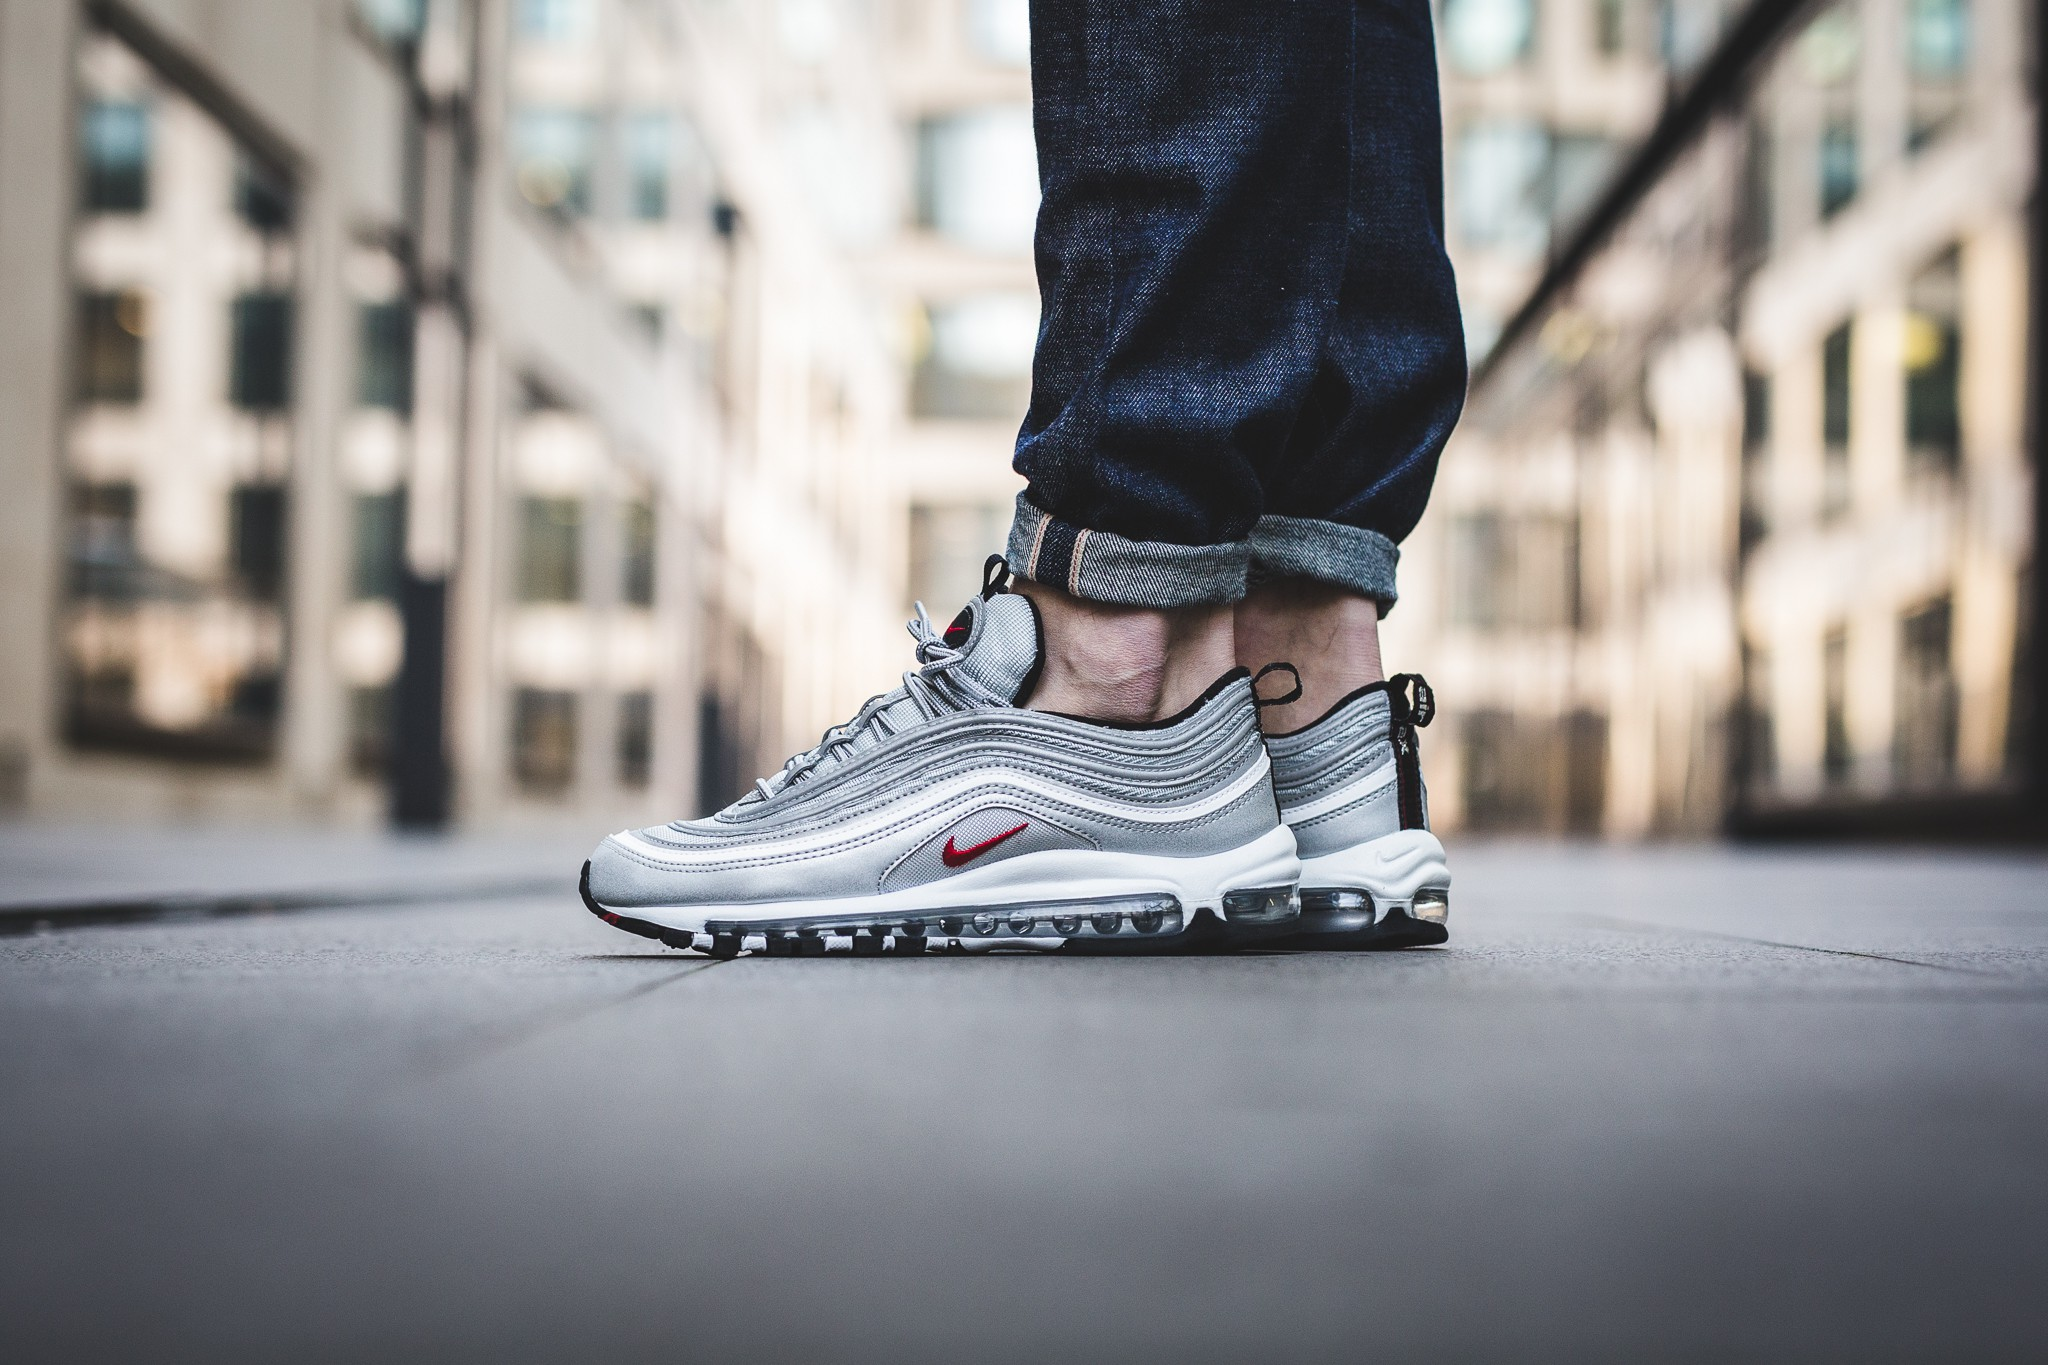 UPDATE: The Nike Air Max 97 'Silver Bullet' Restocks